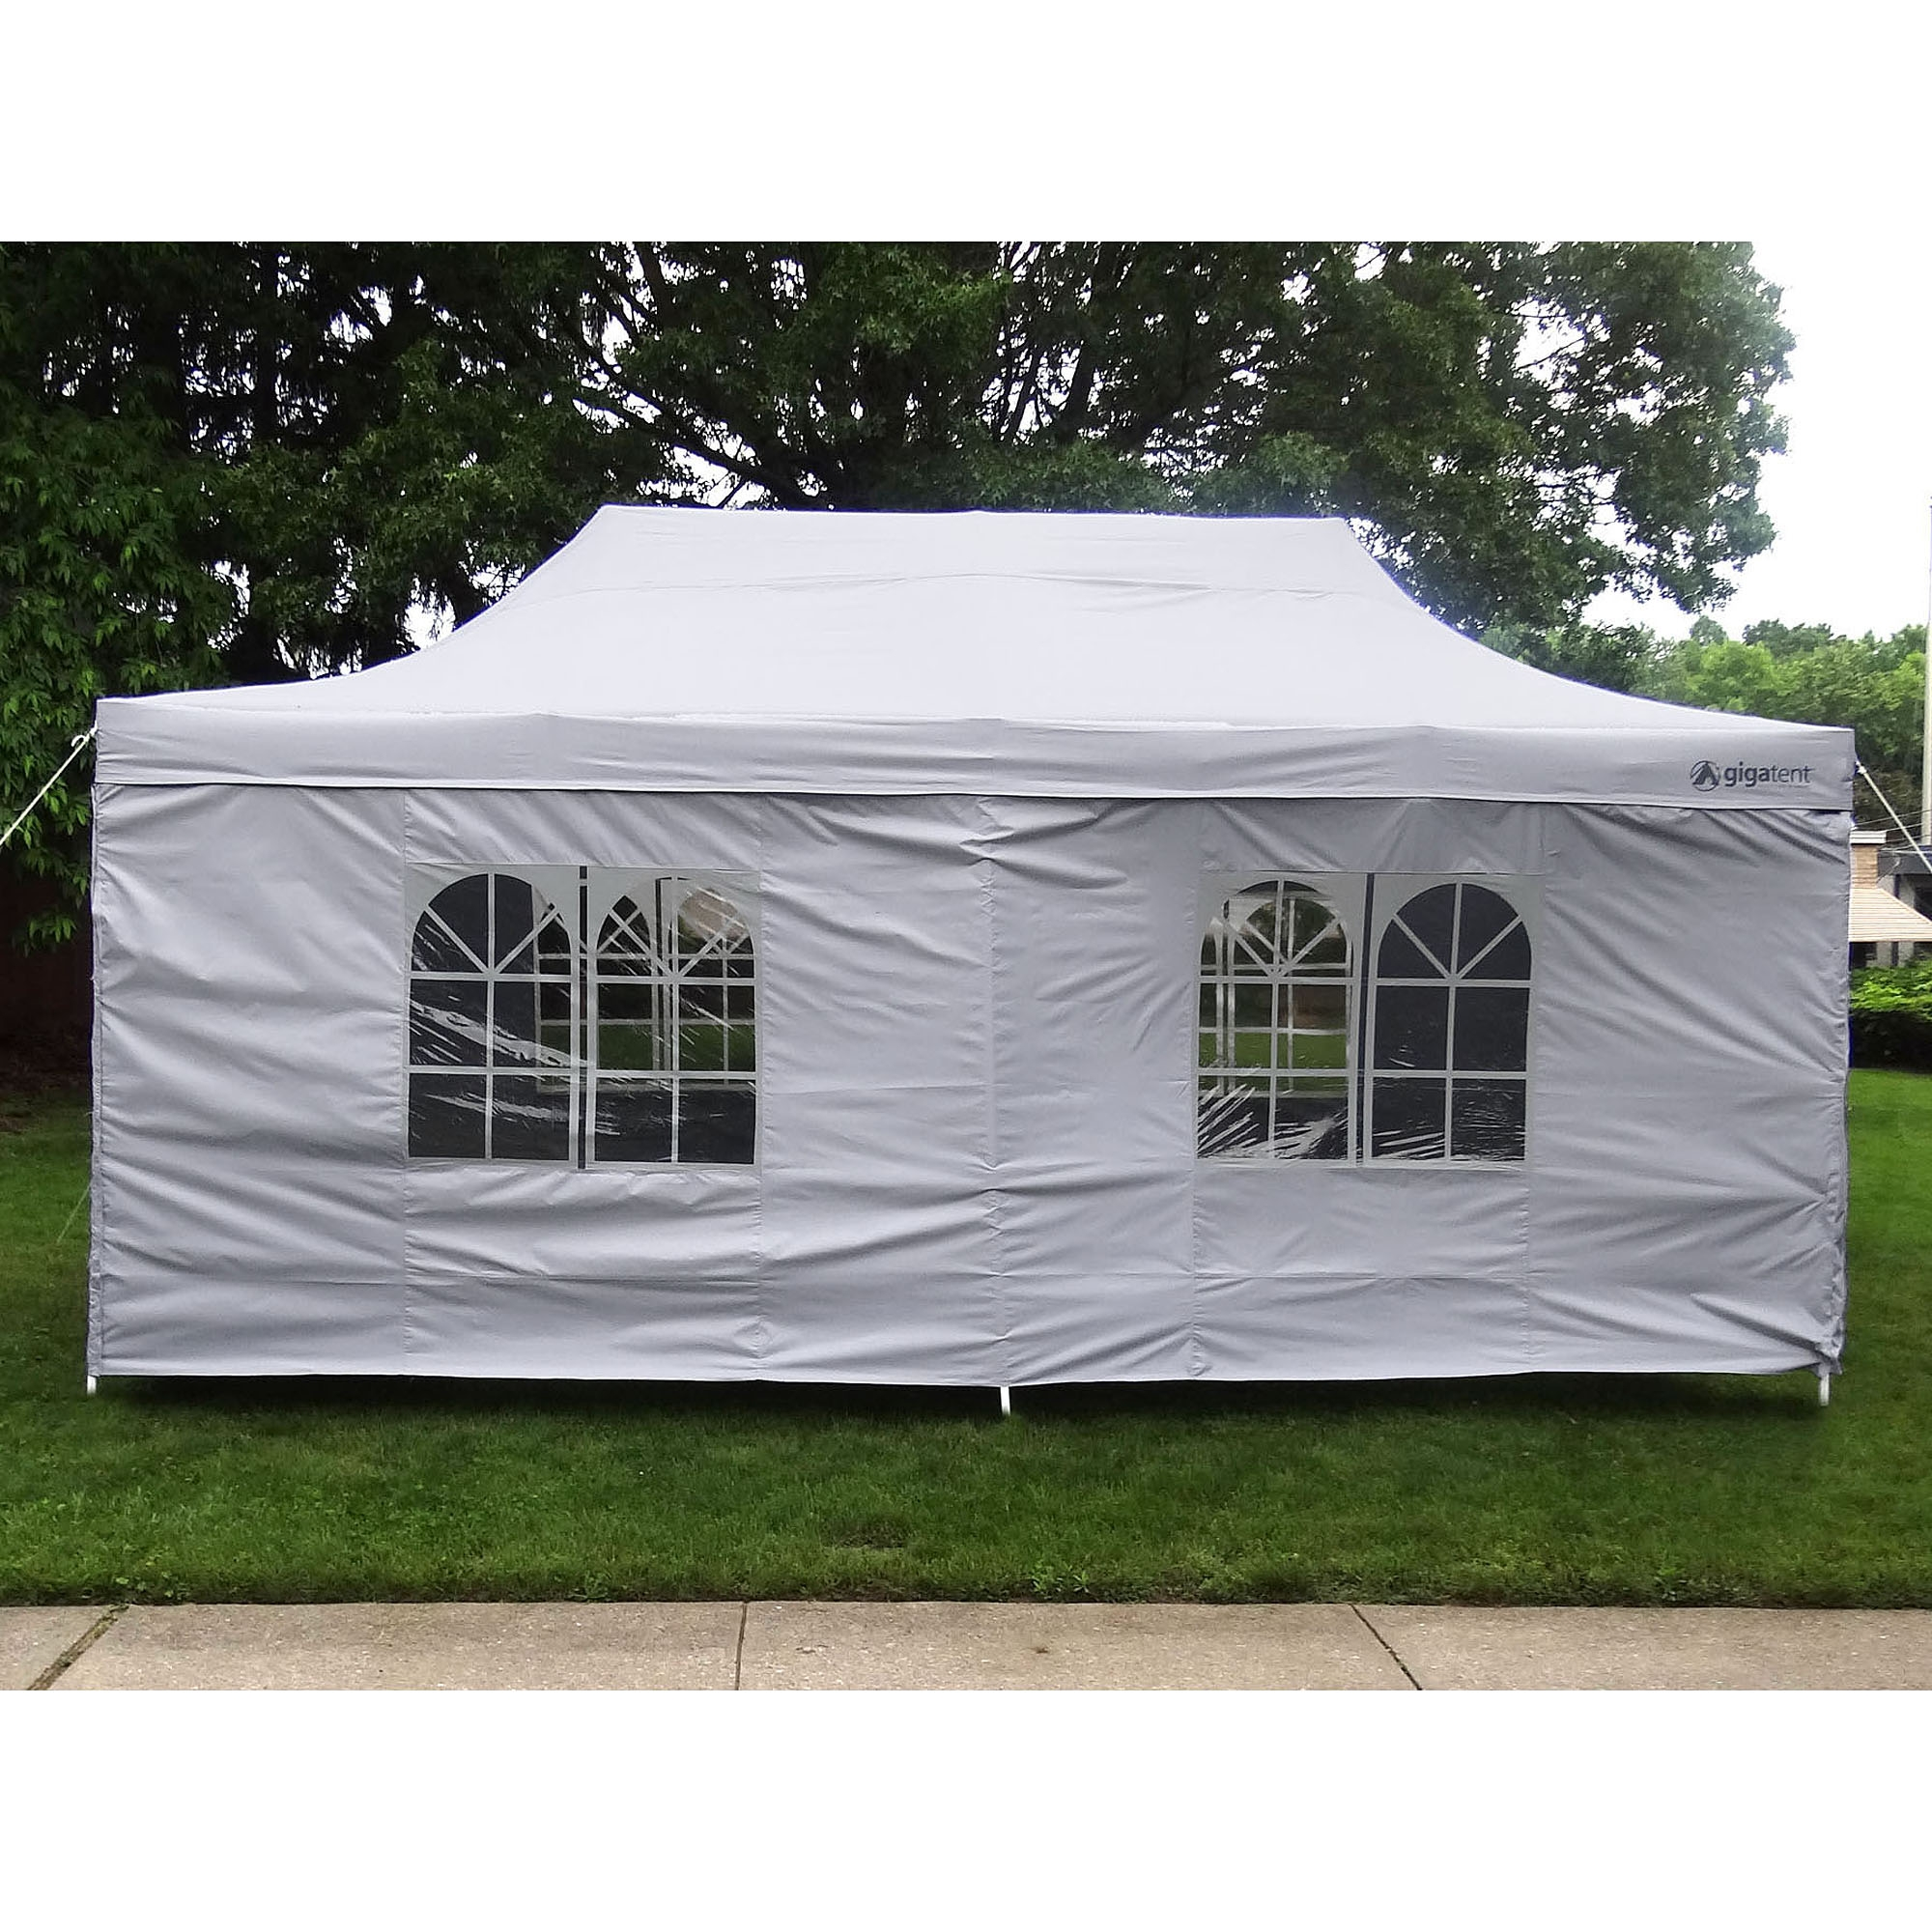 gigatent the party tent deluxe 10 x 20 canopy white walmart